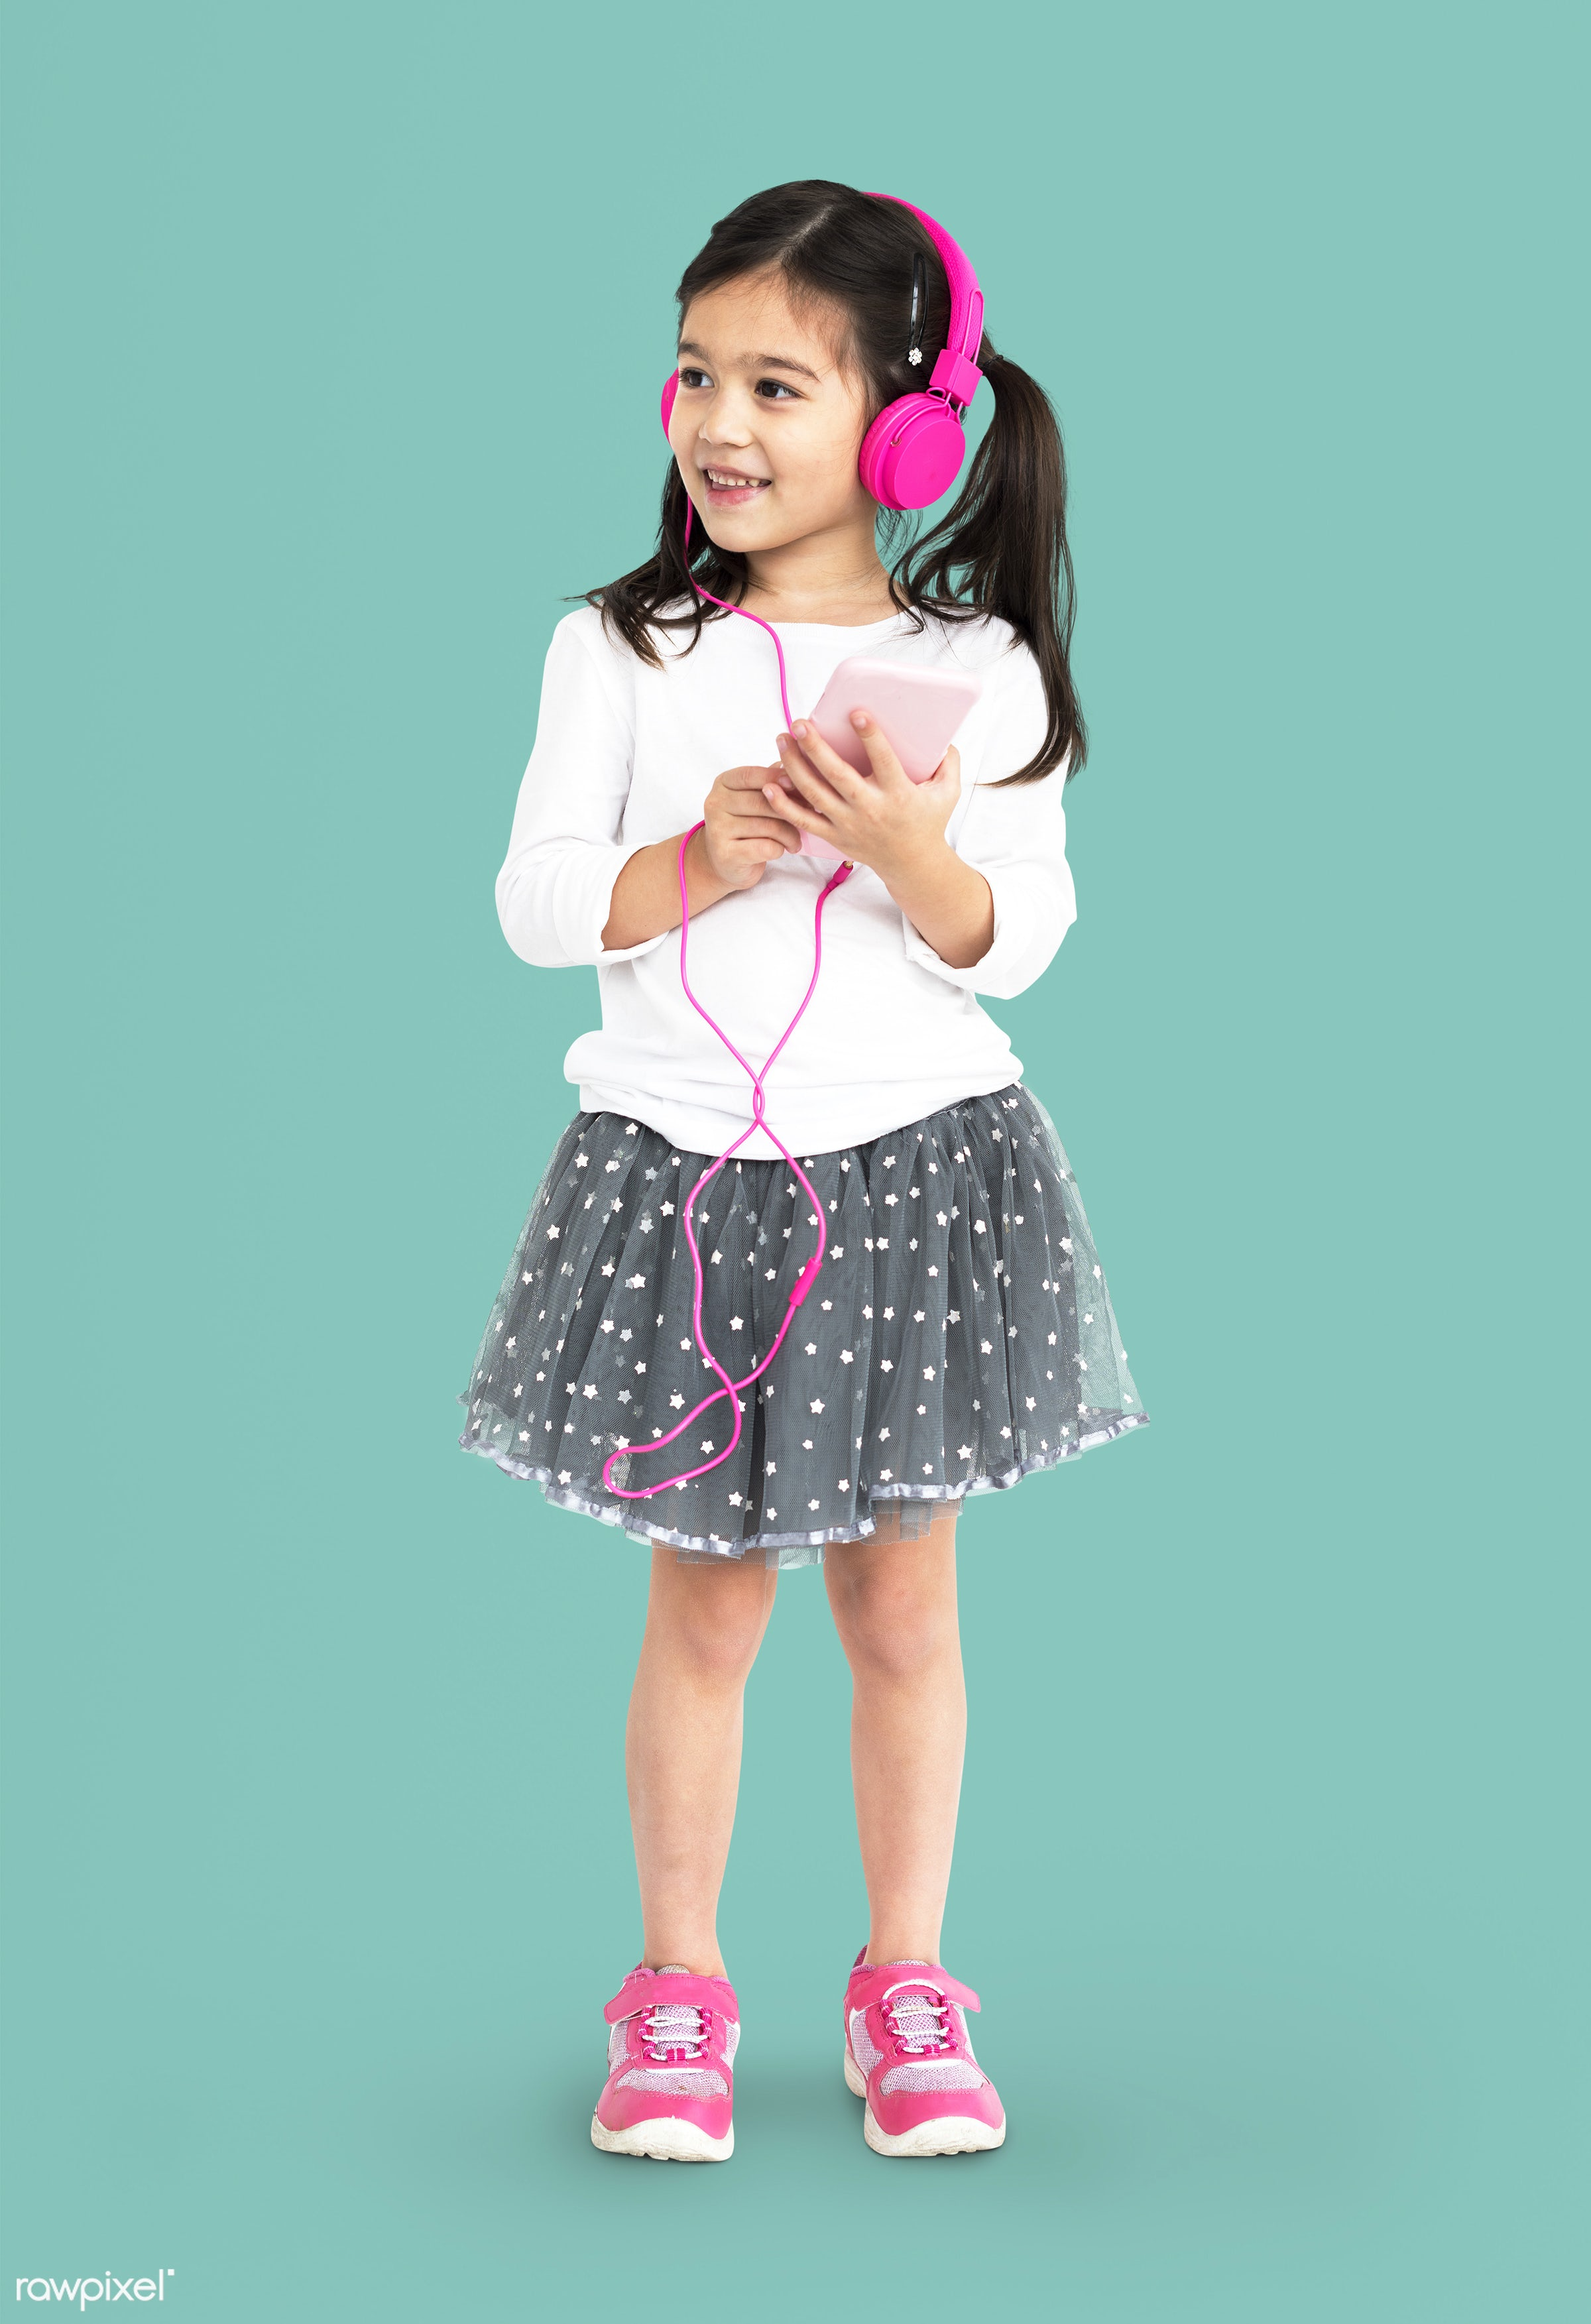 studio, expression, using, person, technology, full length, little, people, kid, childhood, smart phone, cheerful, smiling,...